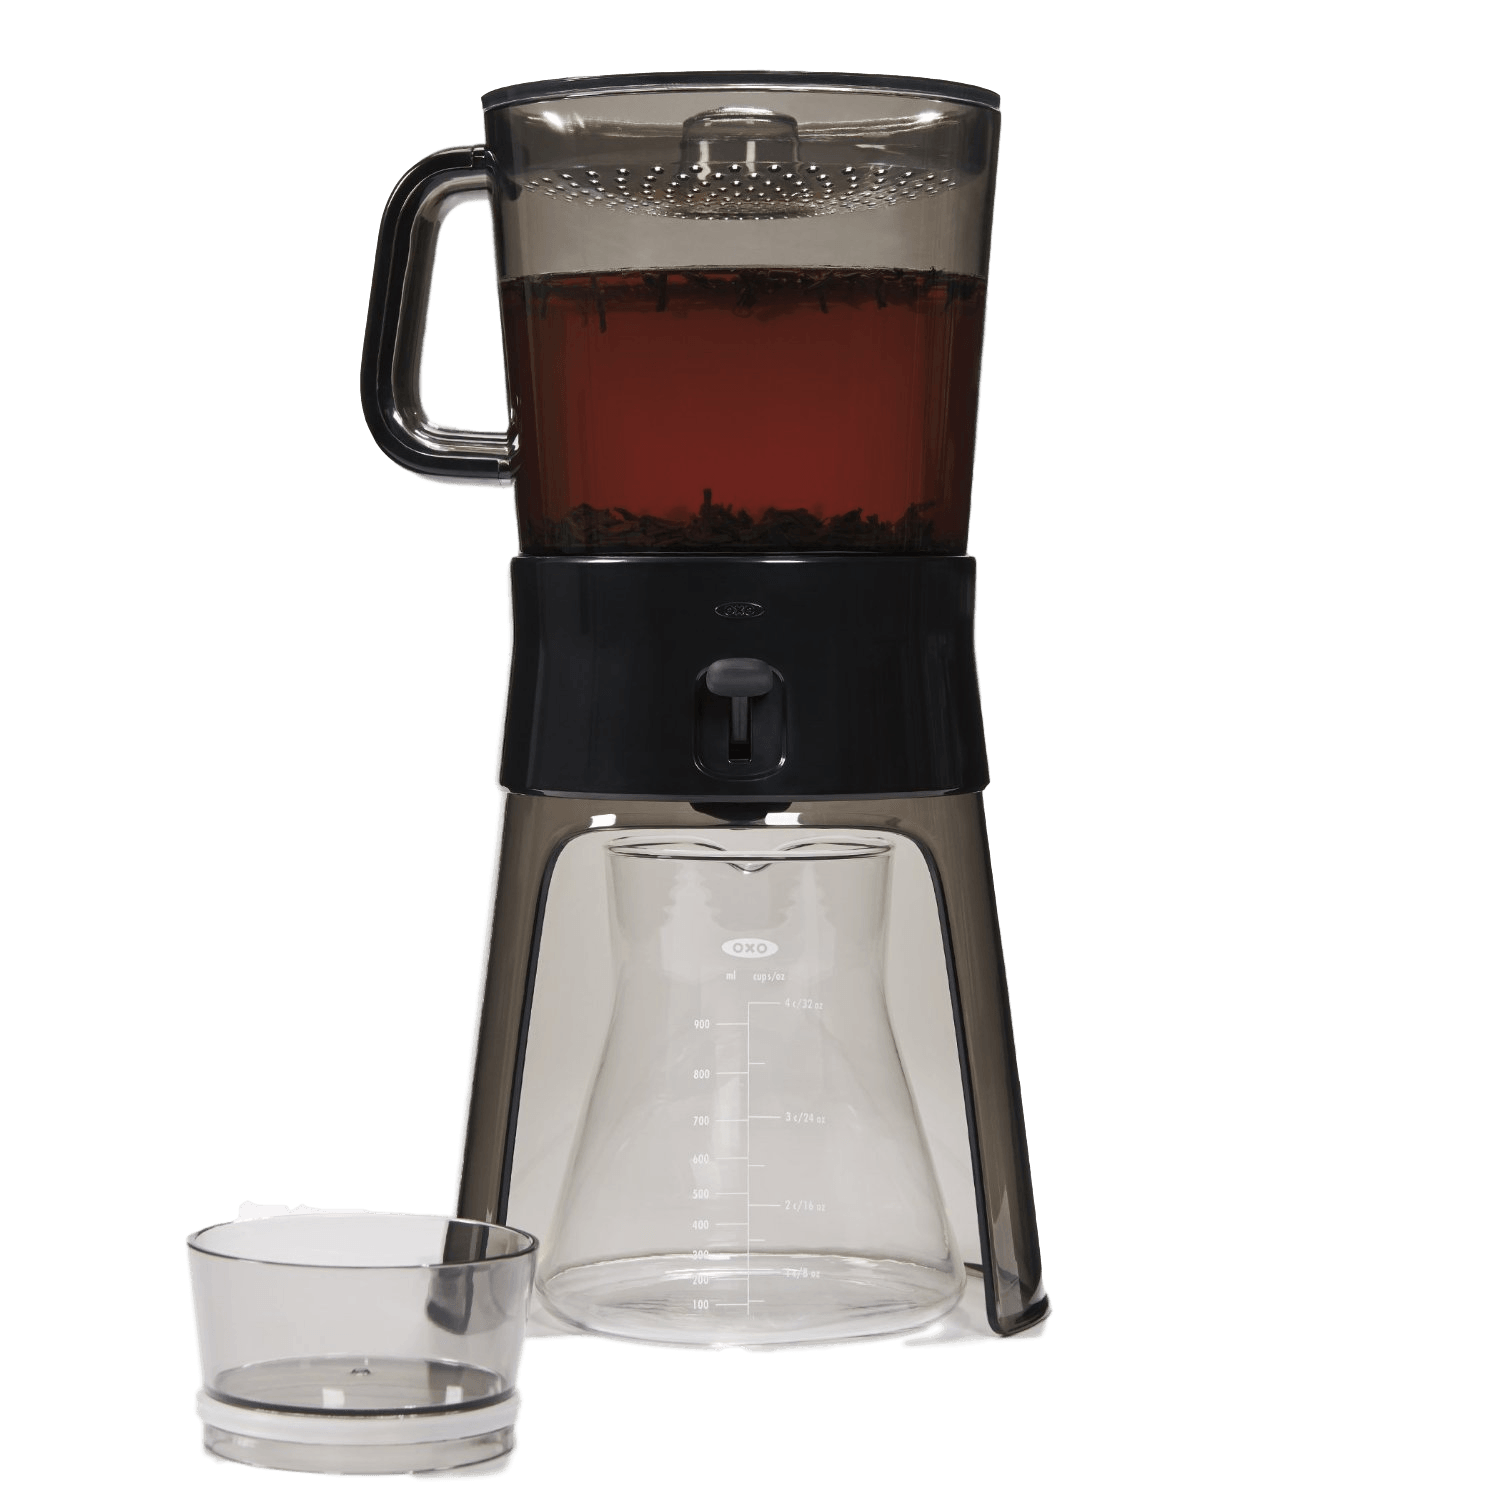 Oxo Cold Brew Coffee Maker Review : A Review Of The OXO Cold Brew Coffee Maker - Home Grounds